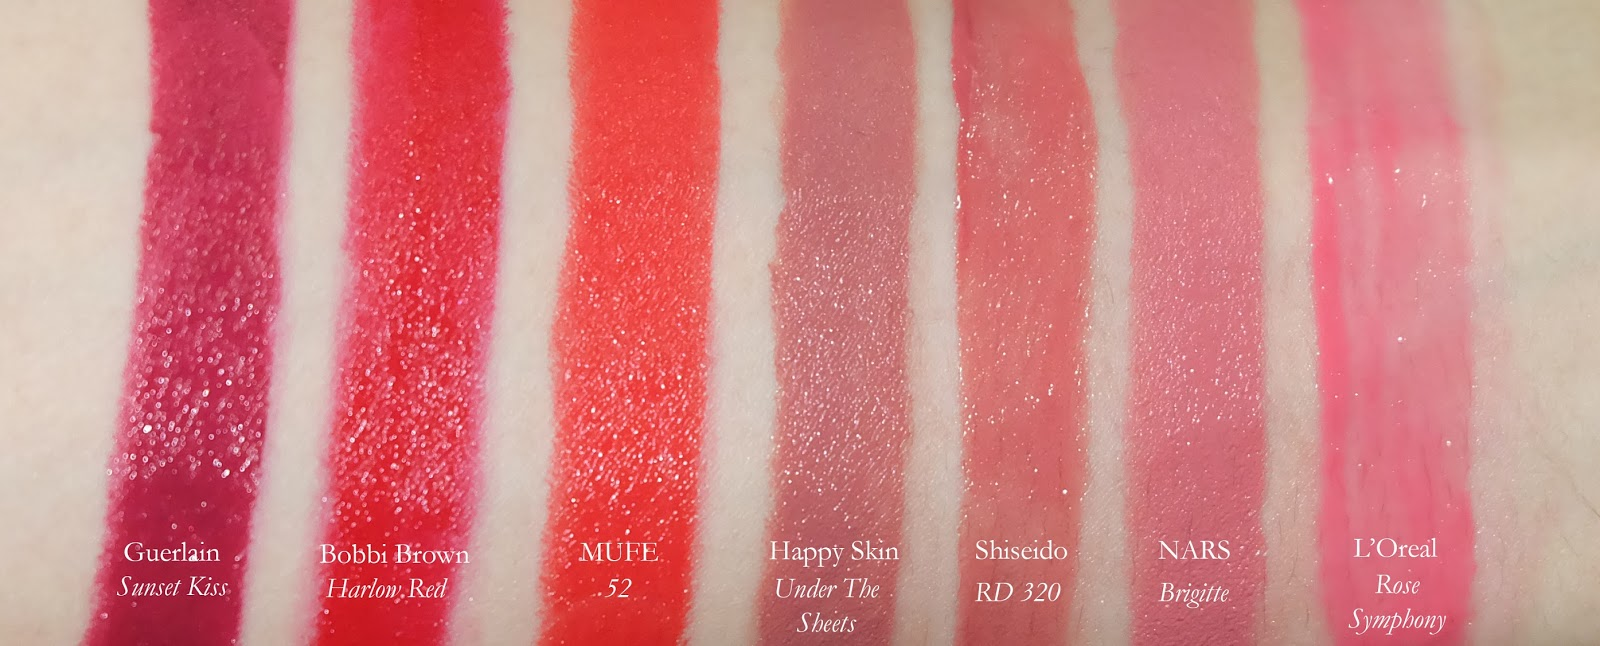 Swatches of Best Lipsticks 2014 product review